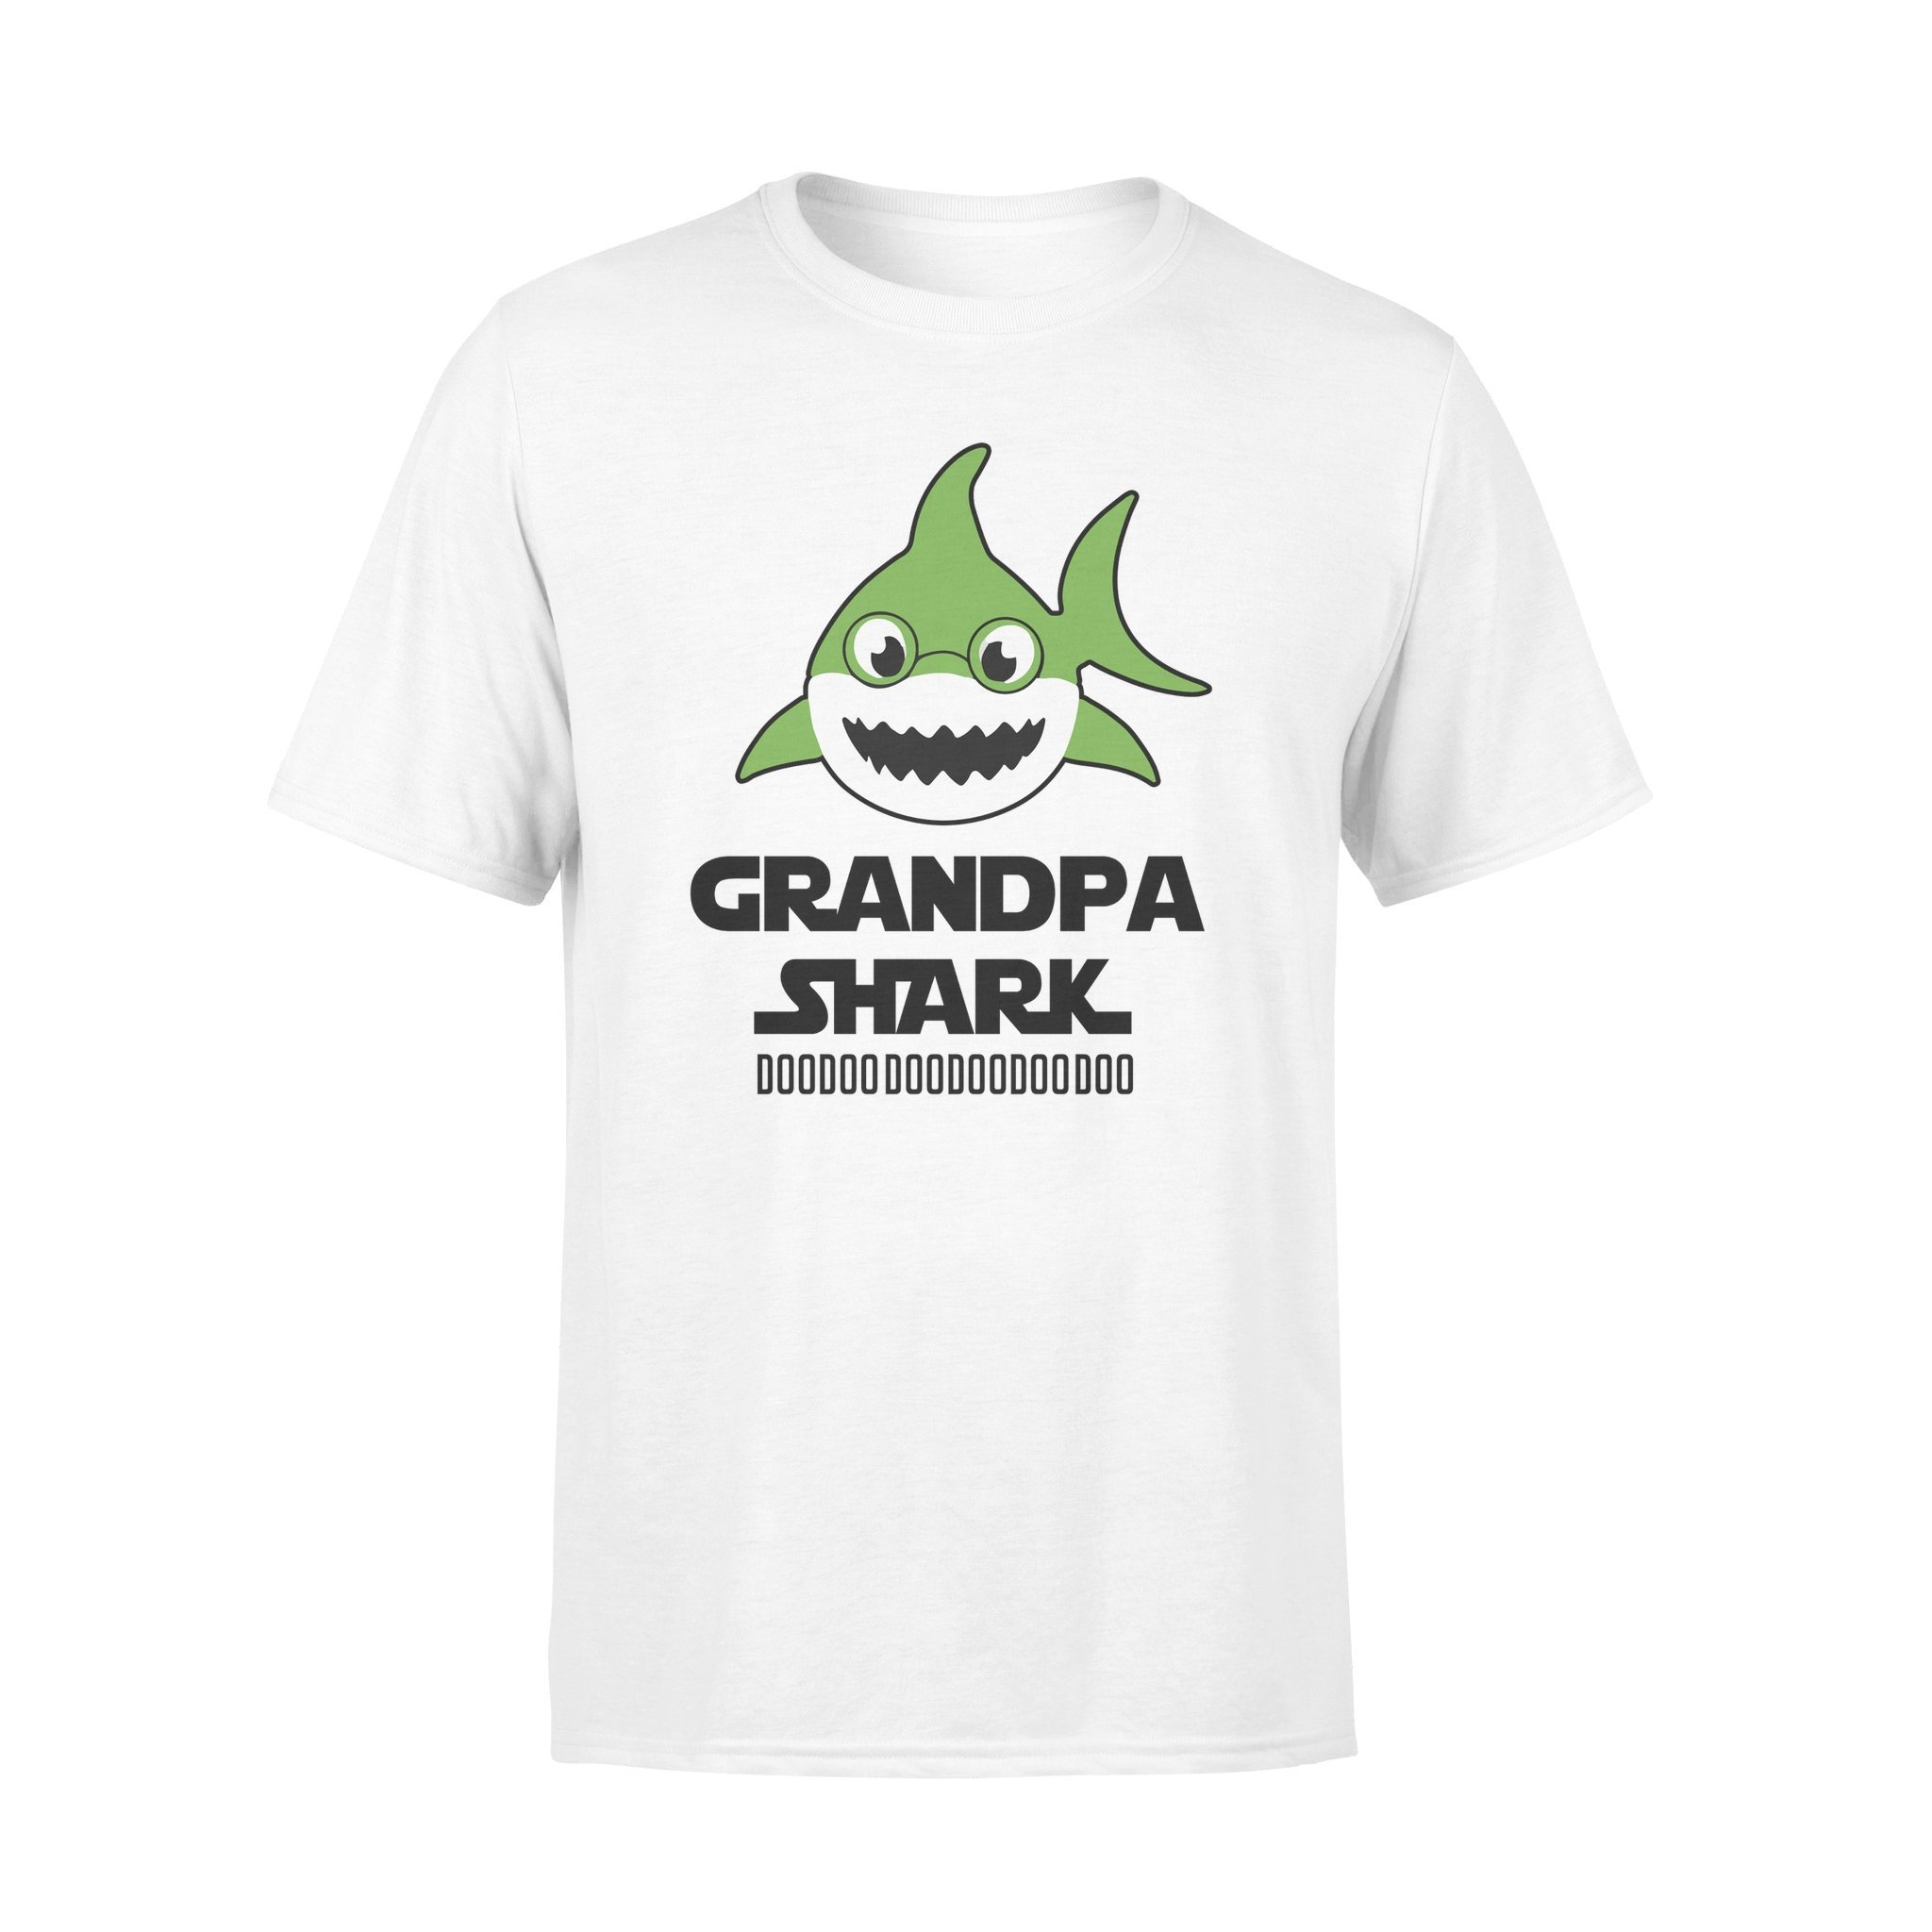 shark T shirt - Gifts for grandpa